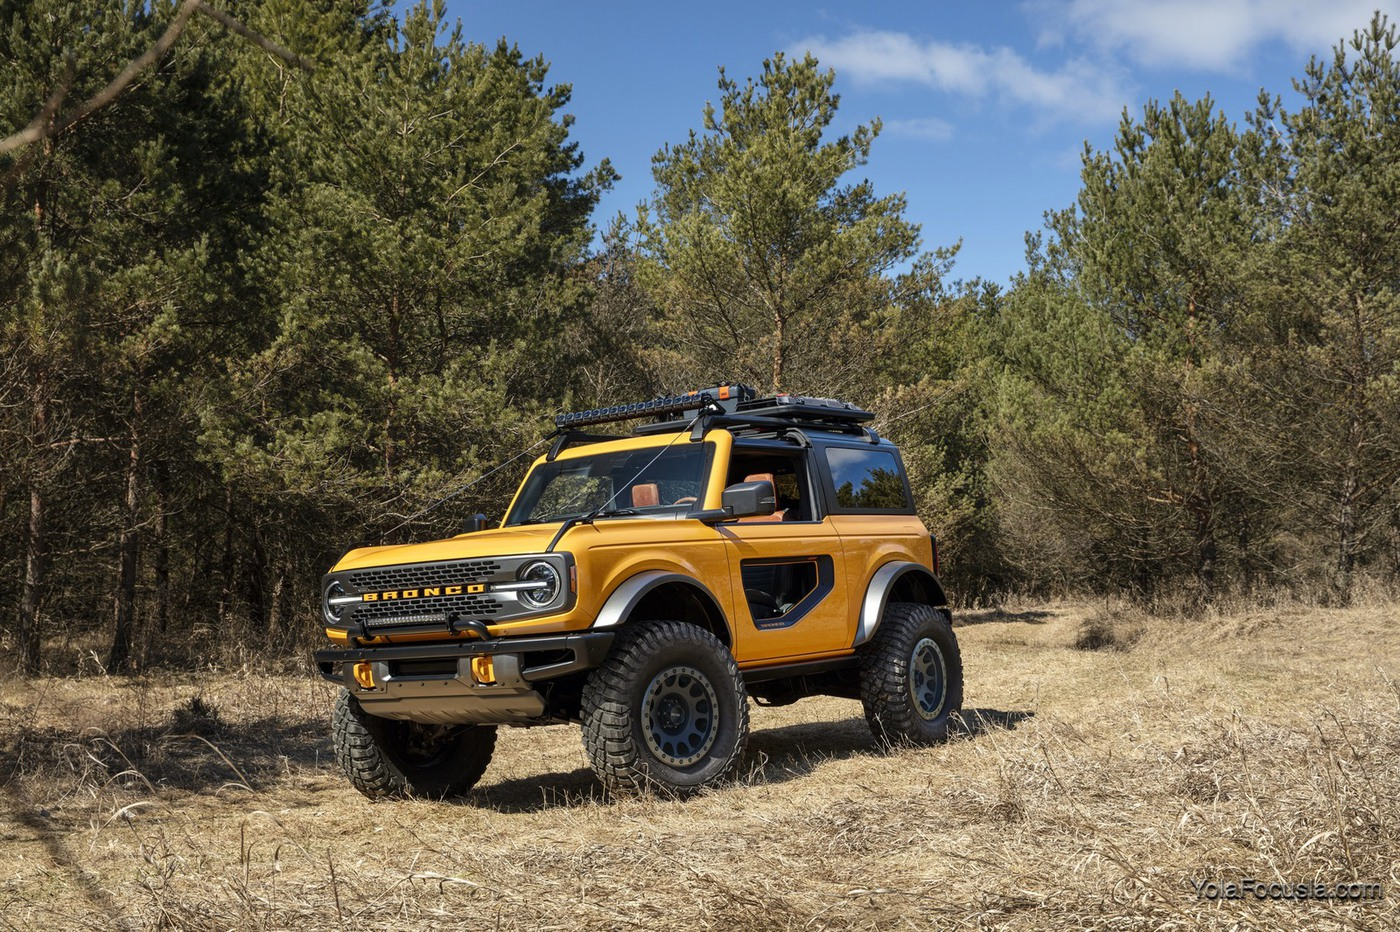 Bronco_2dr_features_01.jpg